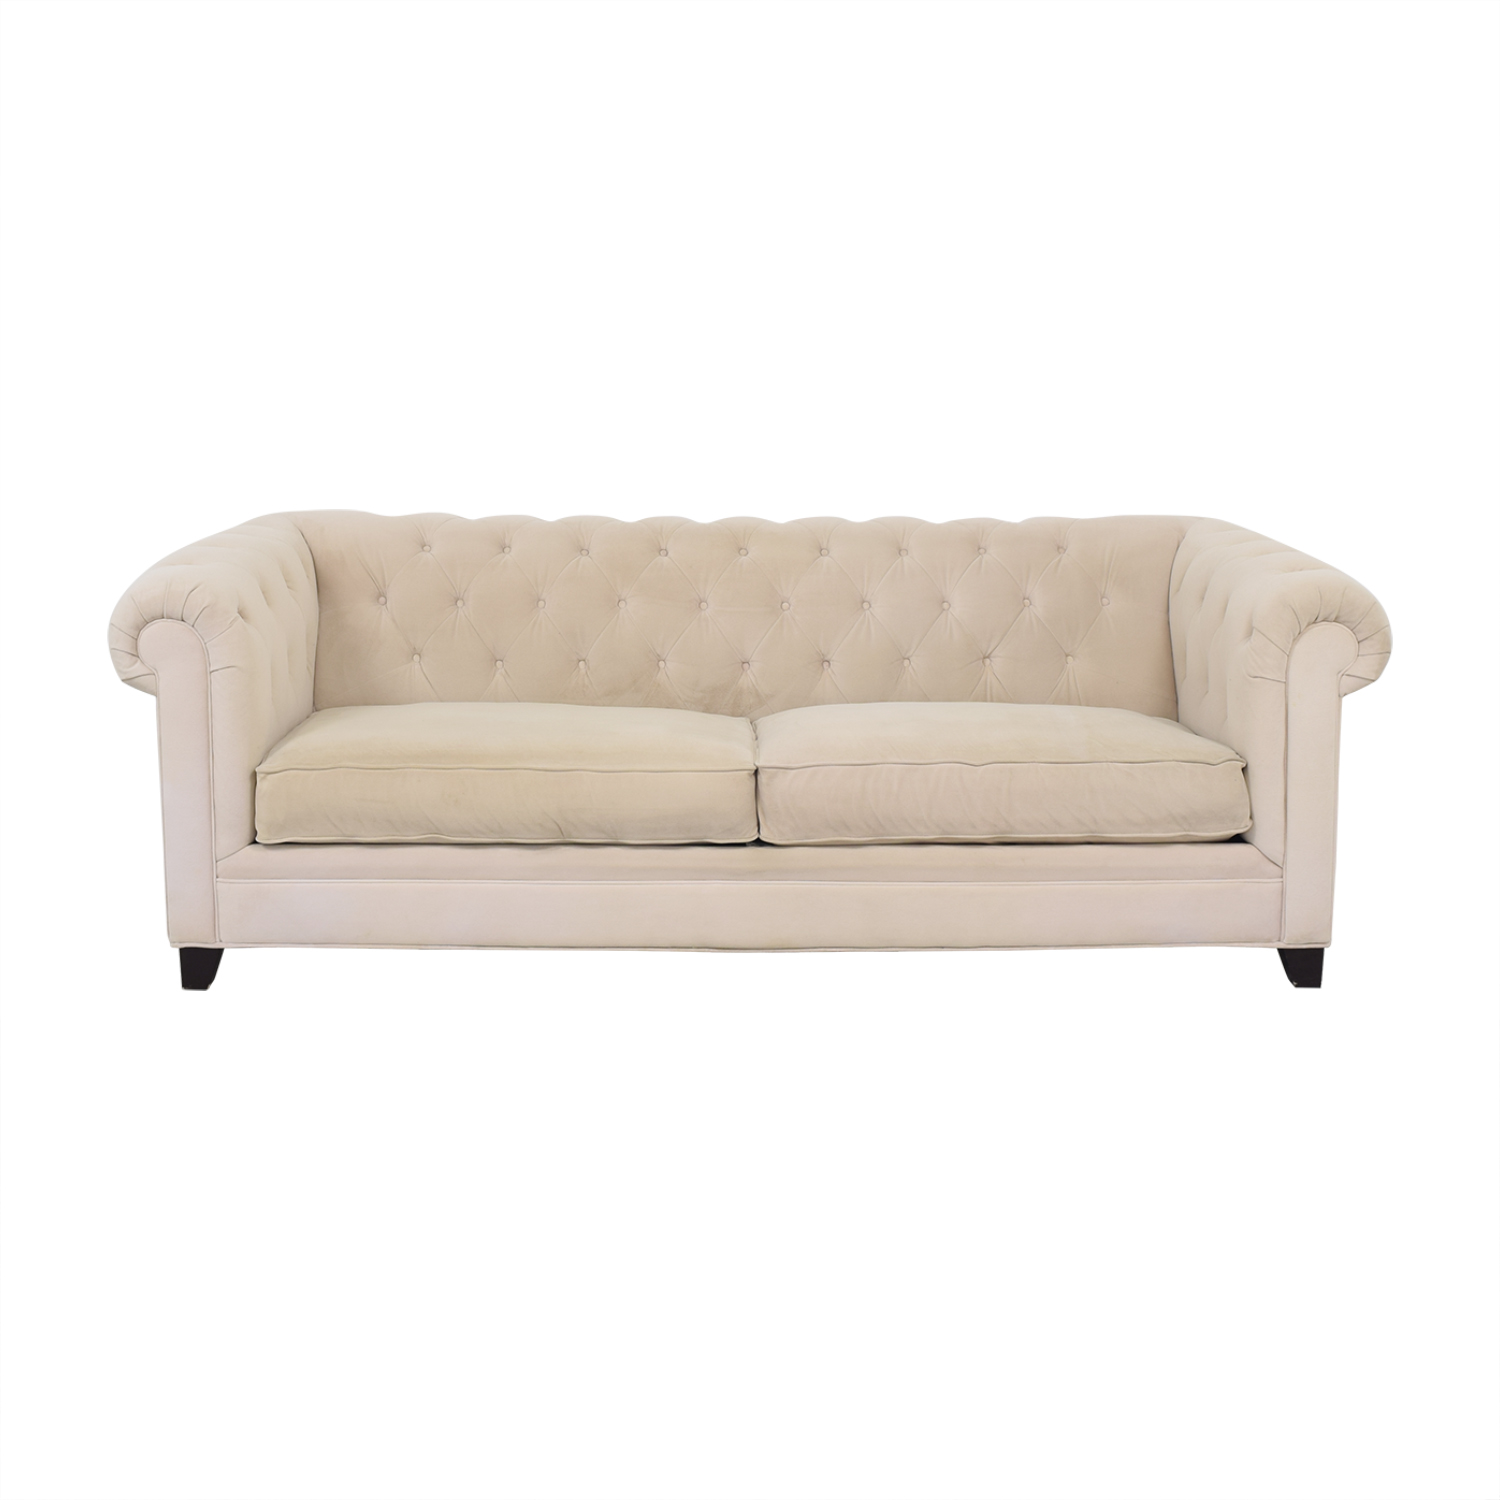 Macy's Macy's Martha Stewart Collection Saybridge Sofa nyc